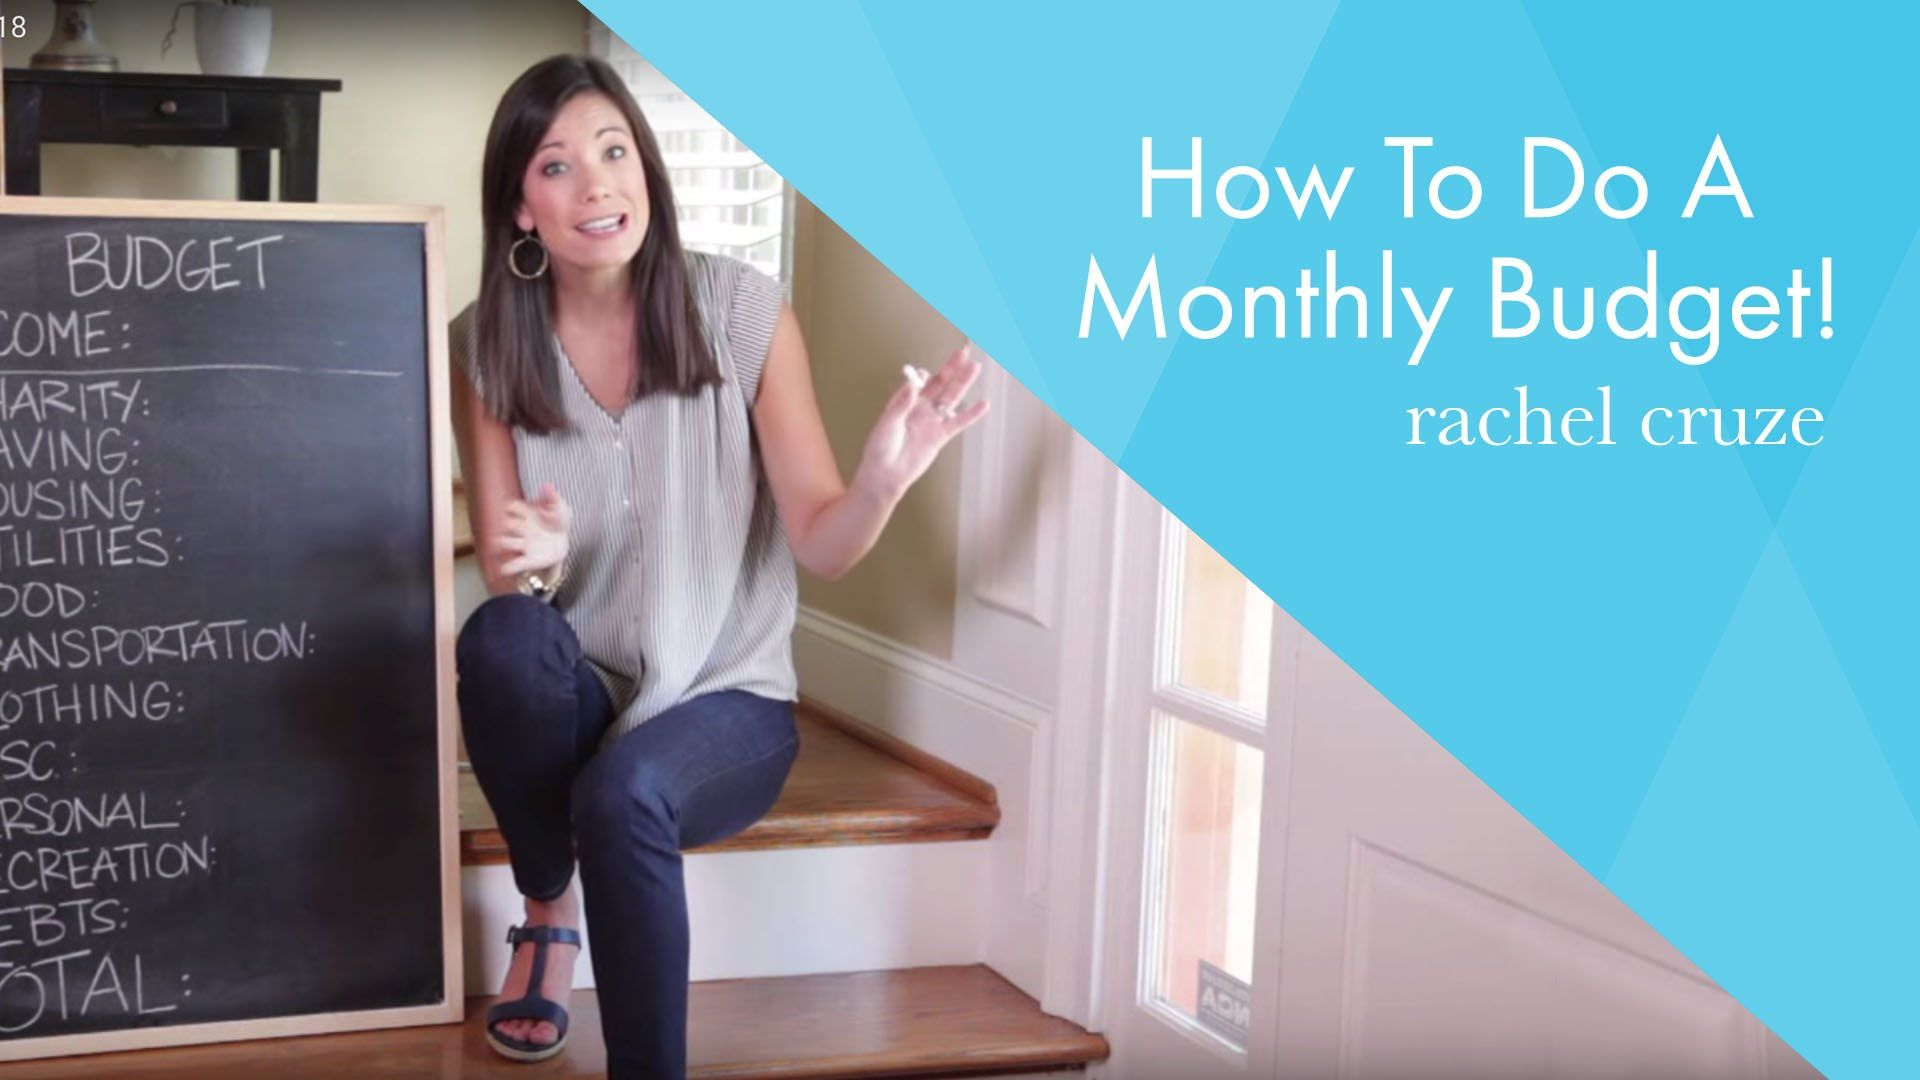 How To Do A Monthly Budget